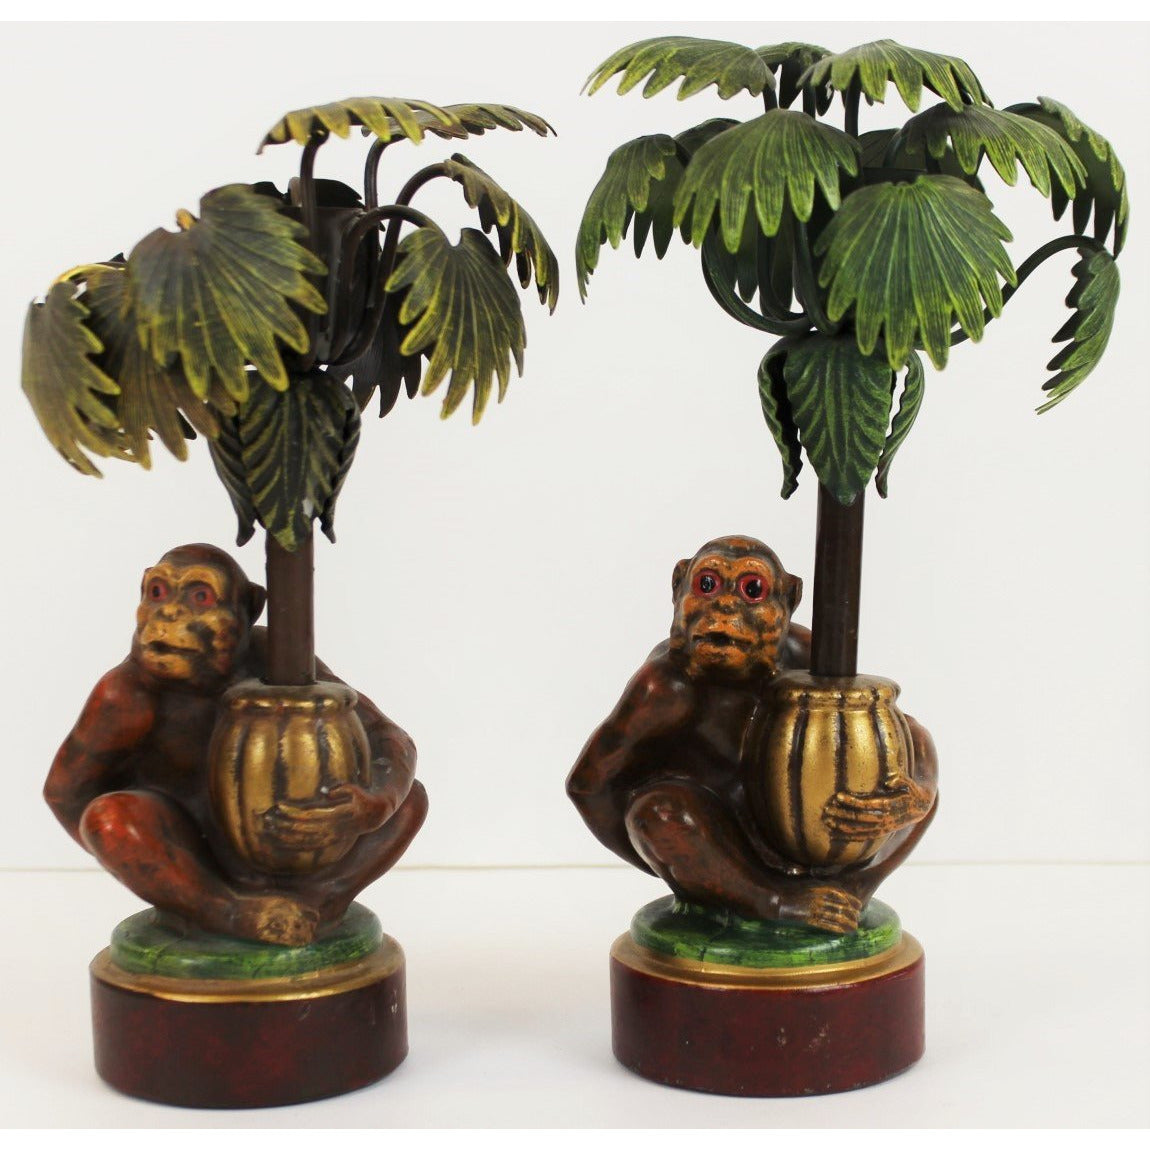 Set of 2 Monkey & Palm Trees Candlestick Holders